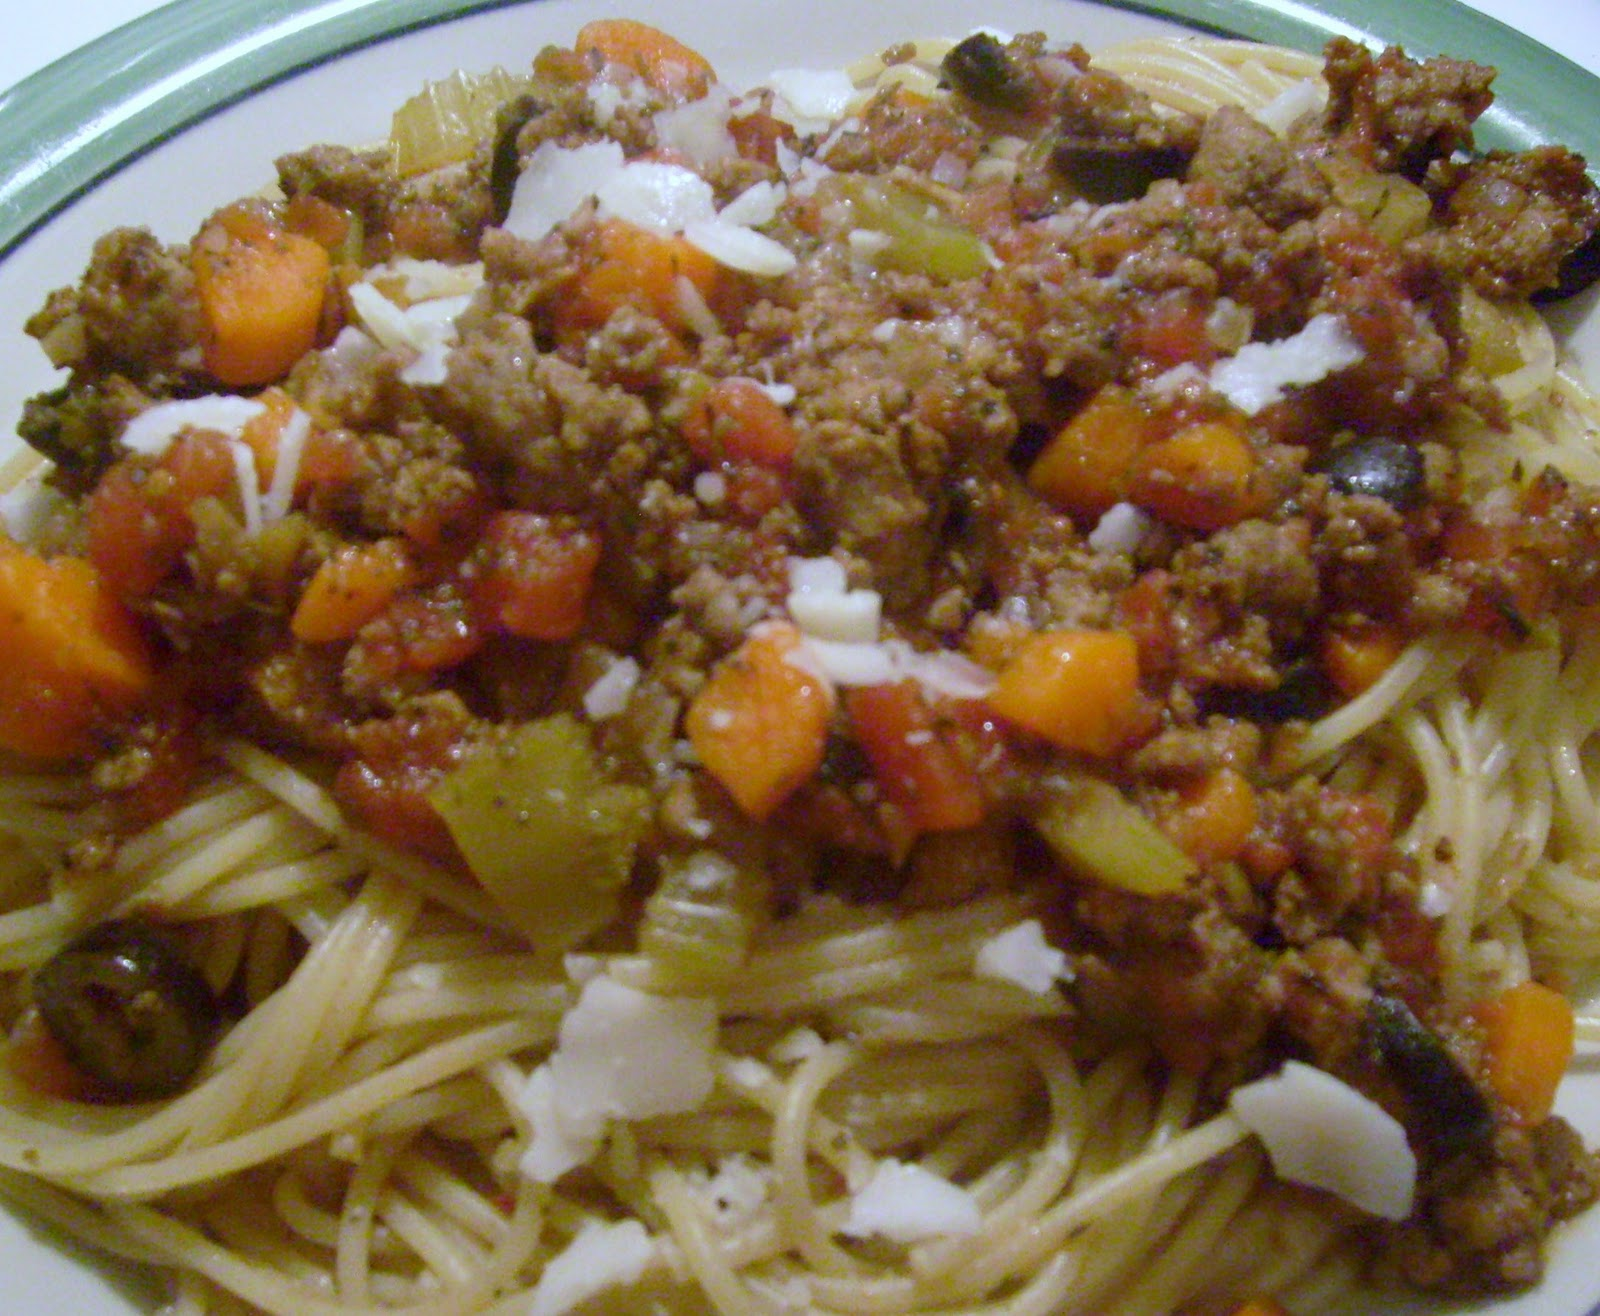 Spaghetti with Turkey Sausage, Olives, and Tomato Sauce